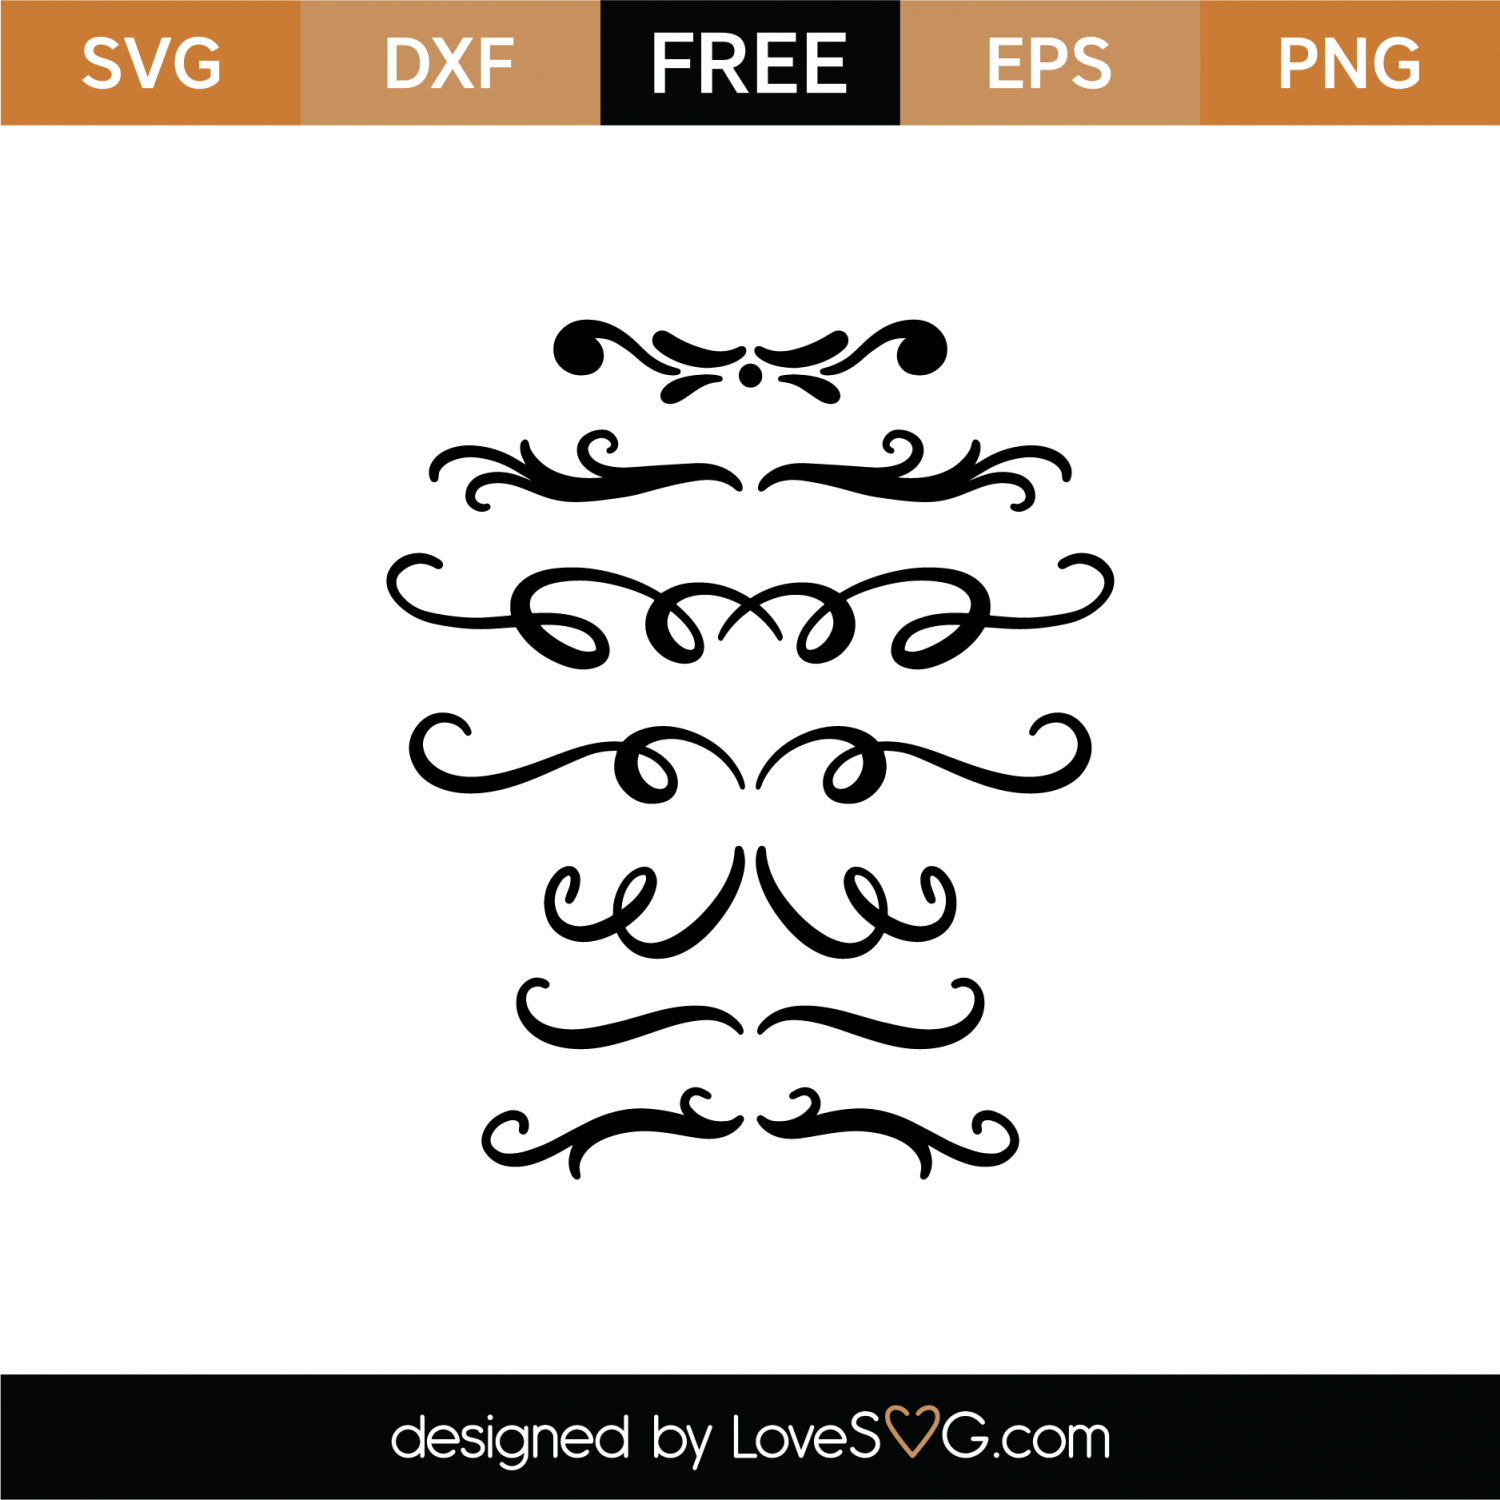 Free Swashes and Swirls SVG Cut File | Lovesvg com